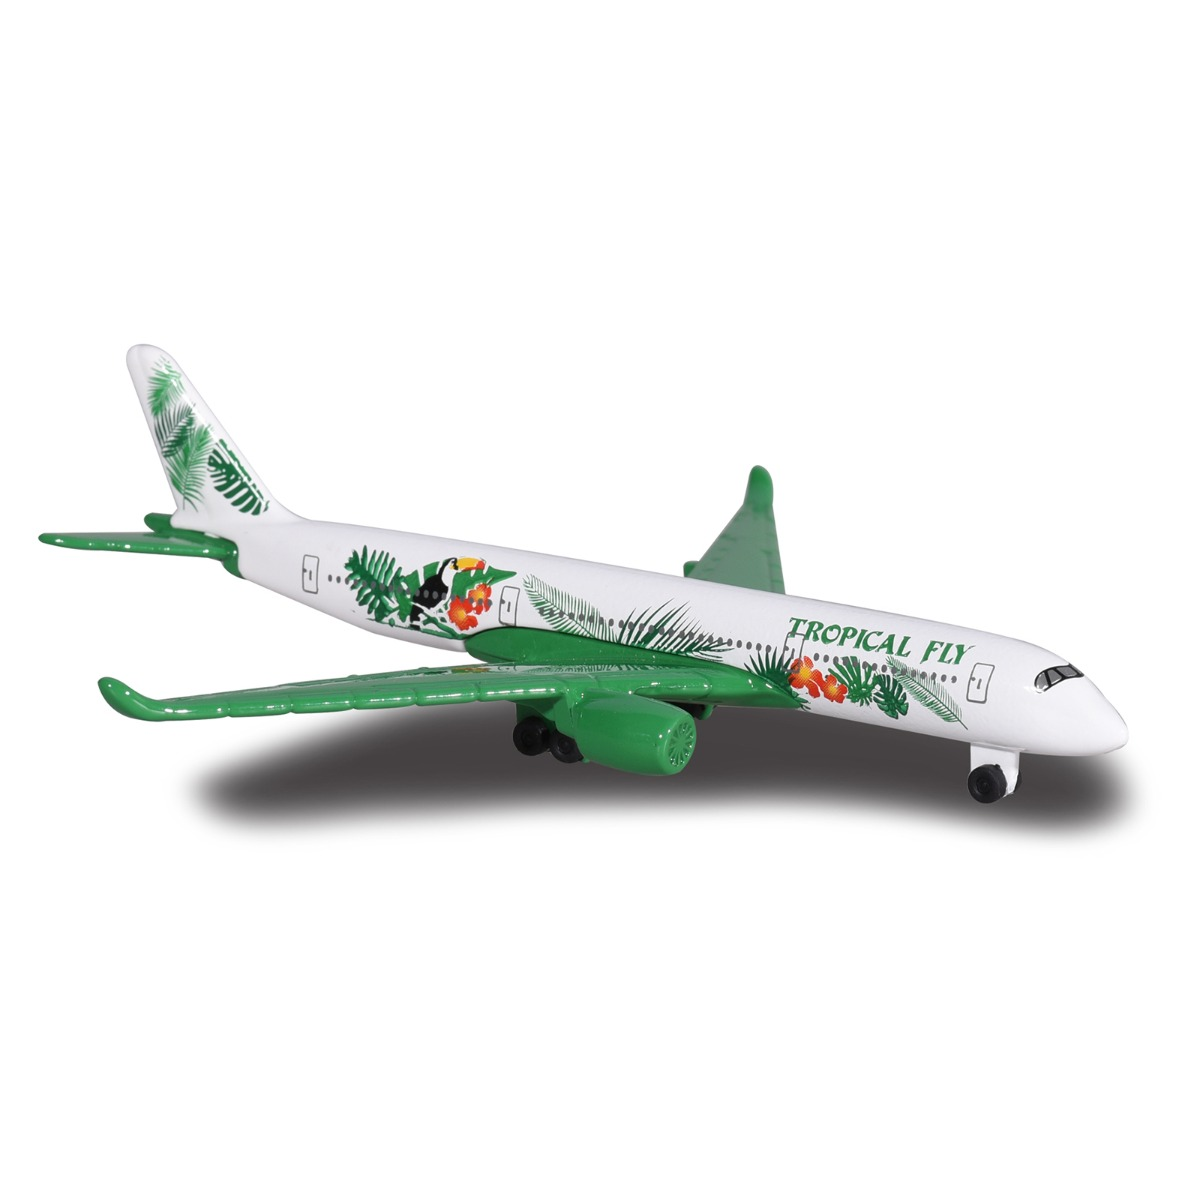 Avion Fantasy Airplane Majorette, Tropical Fly, 13 cm